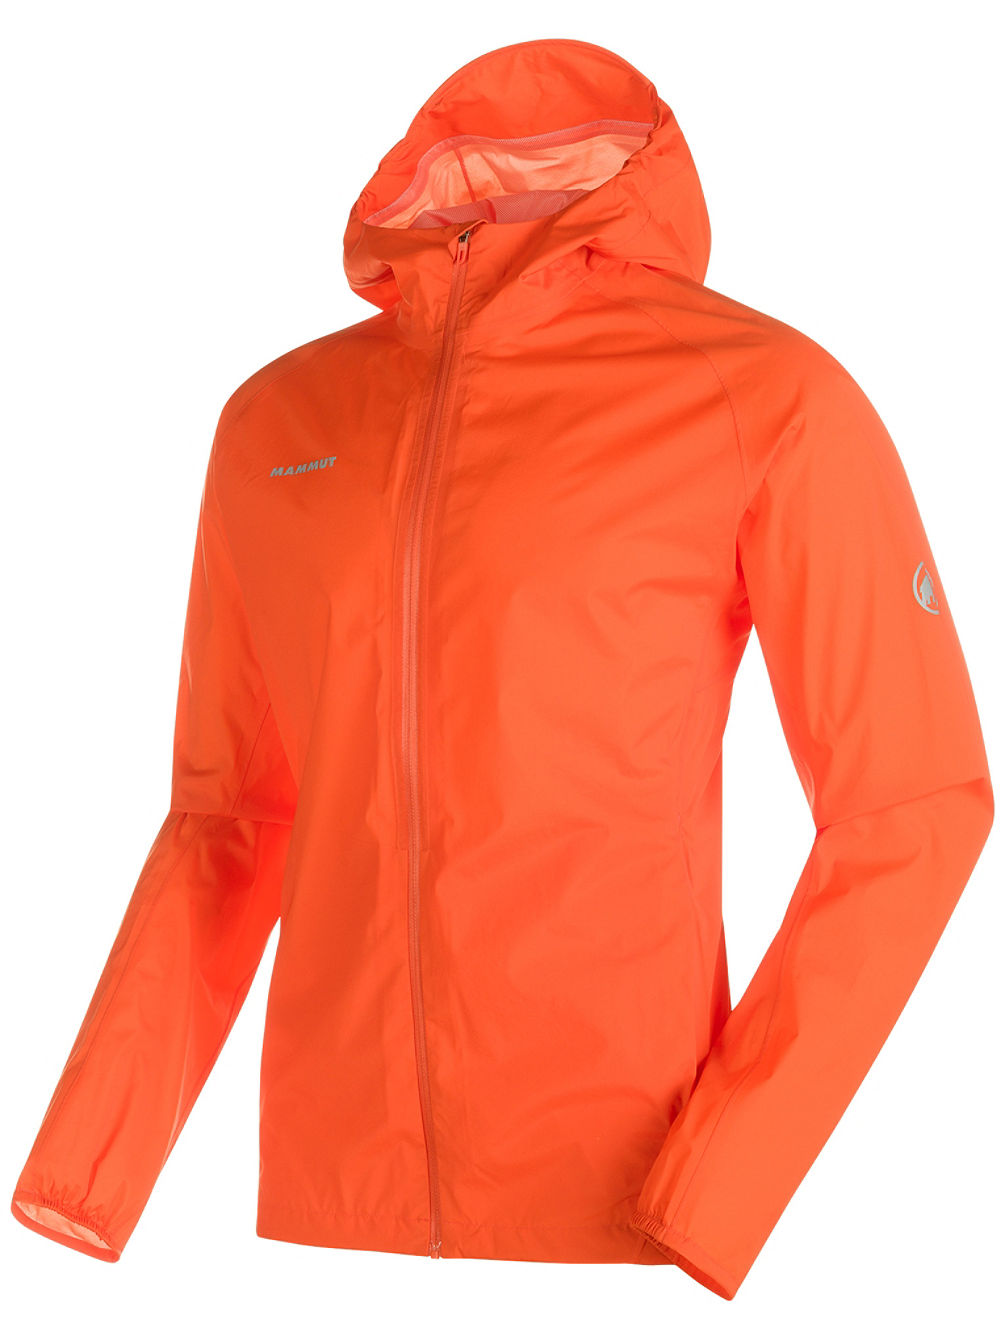 Rainspeed Outdoor Jacket